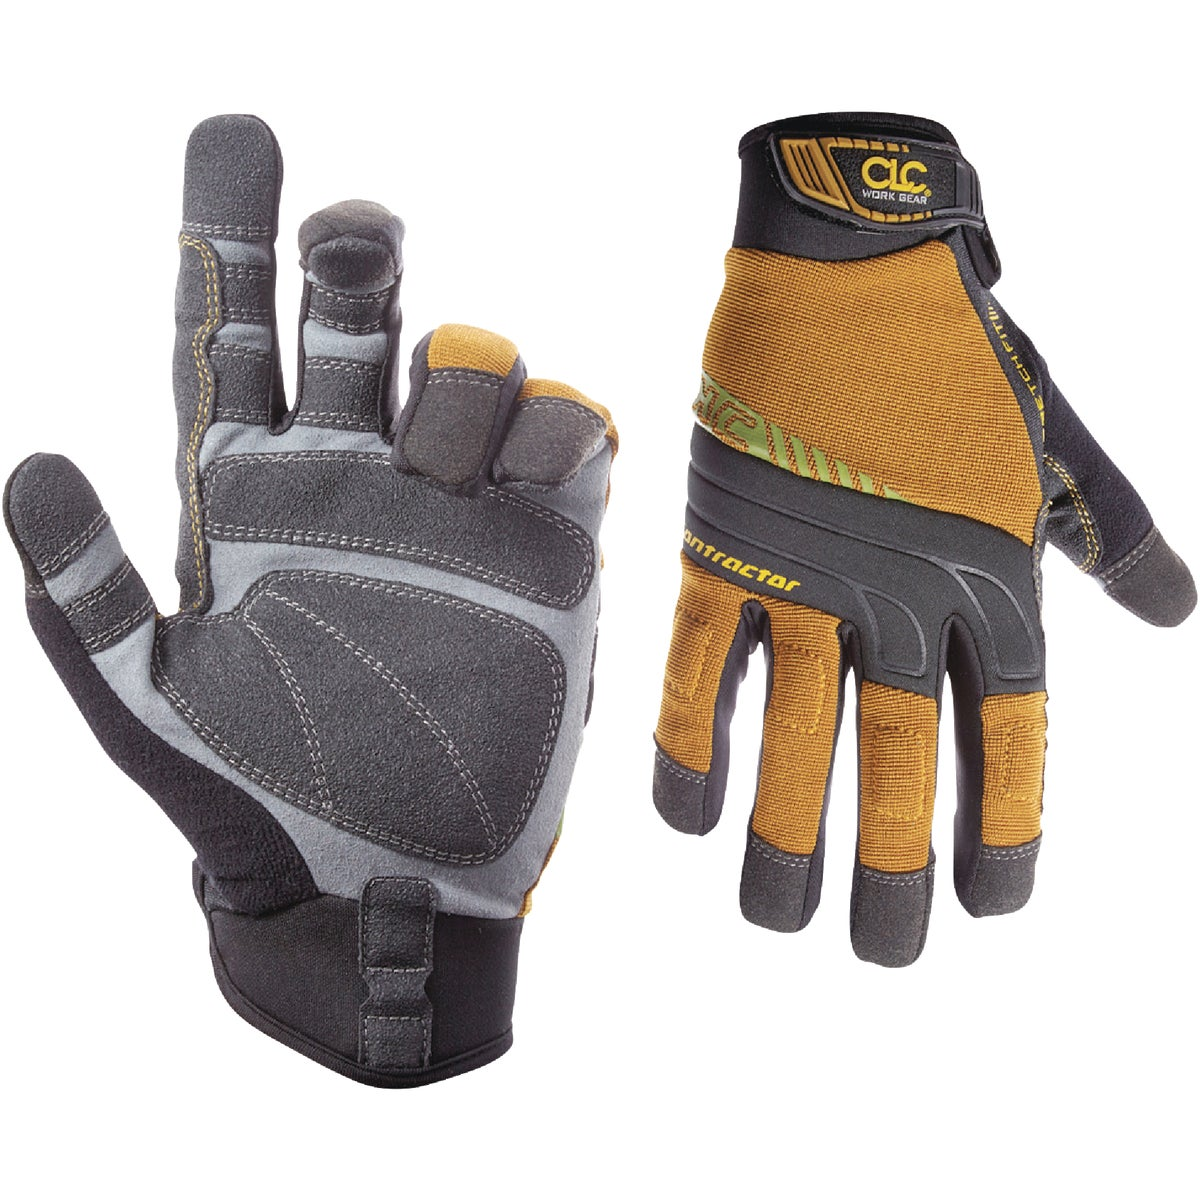 XL CONTRACTOR GLOVE - 160XL by Custom Leathercraft